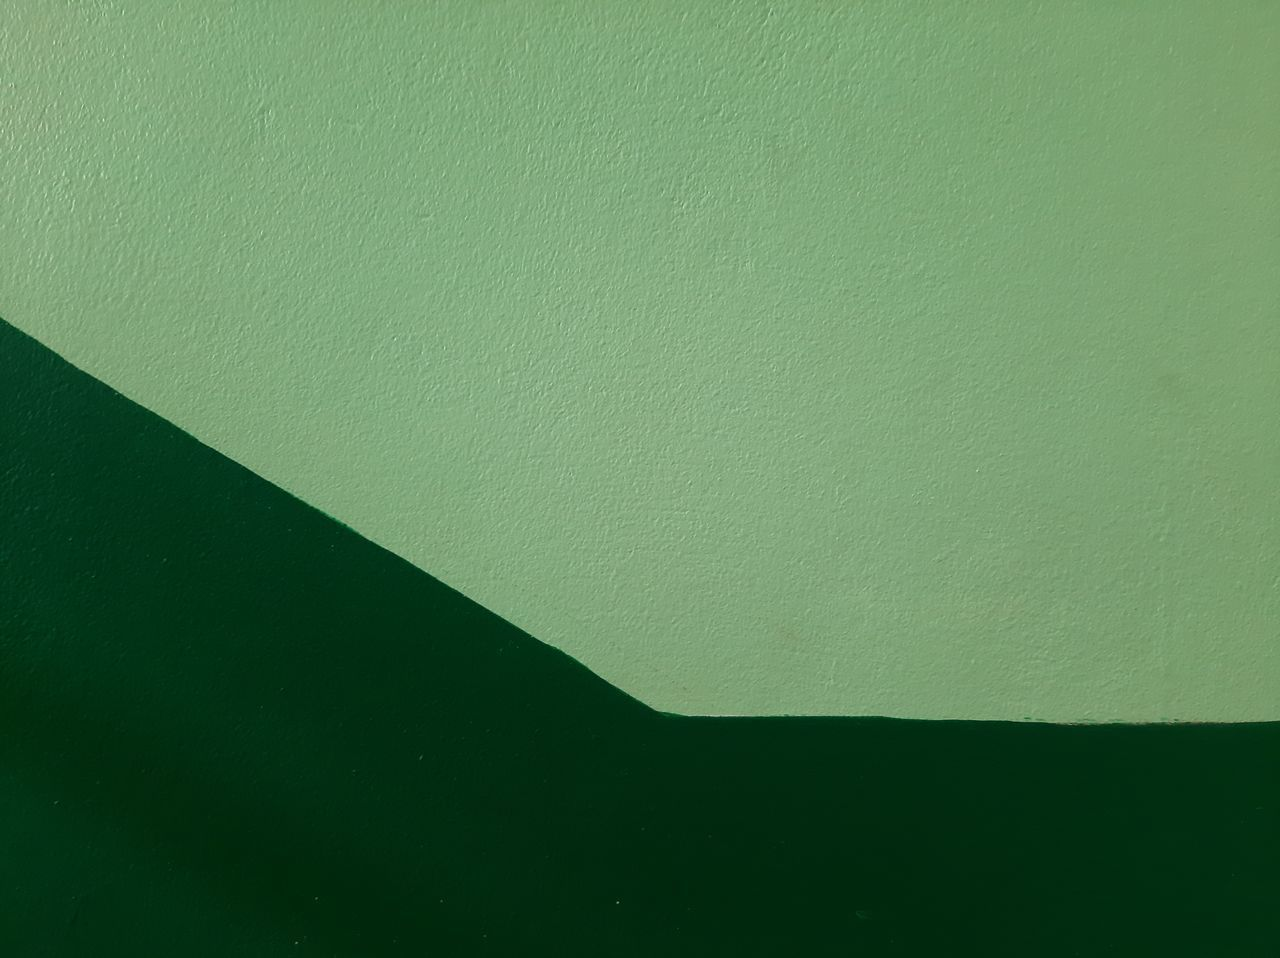 FULL FRAME SHOT OF GREEN WALL WITH PAPER